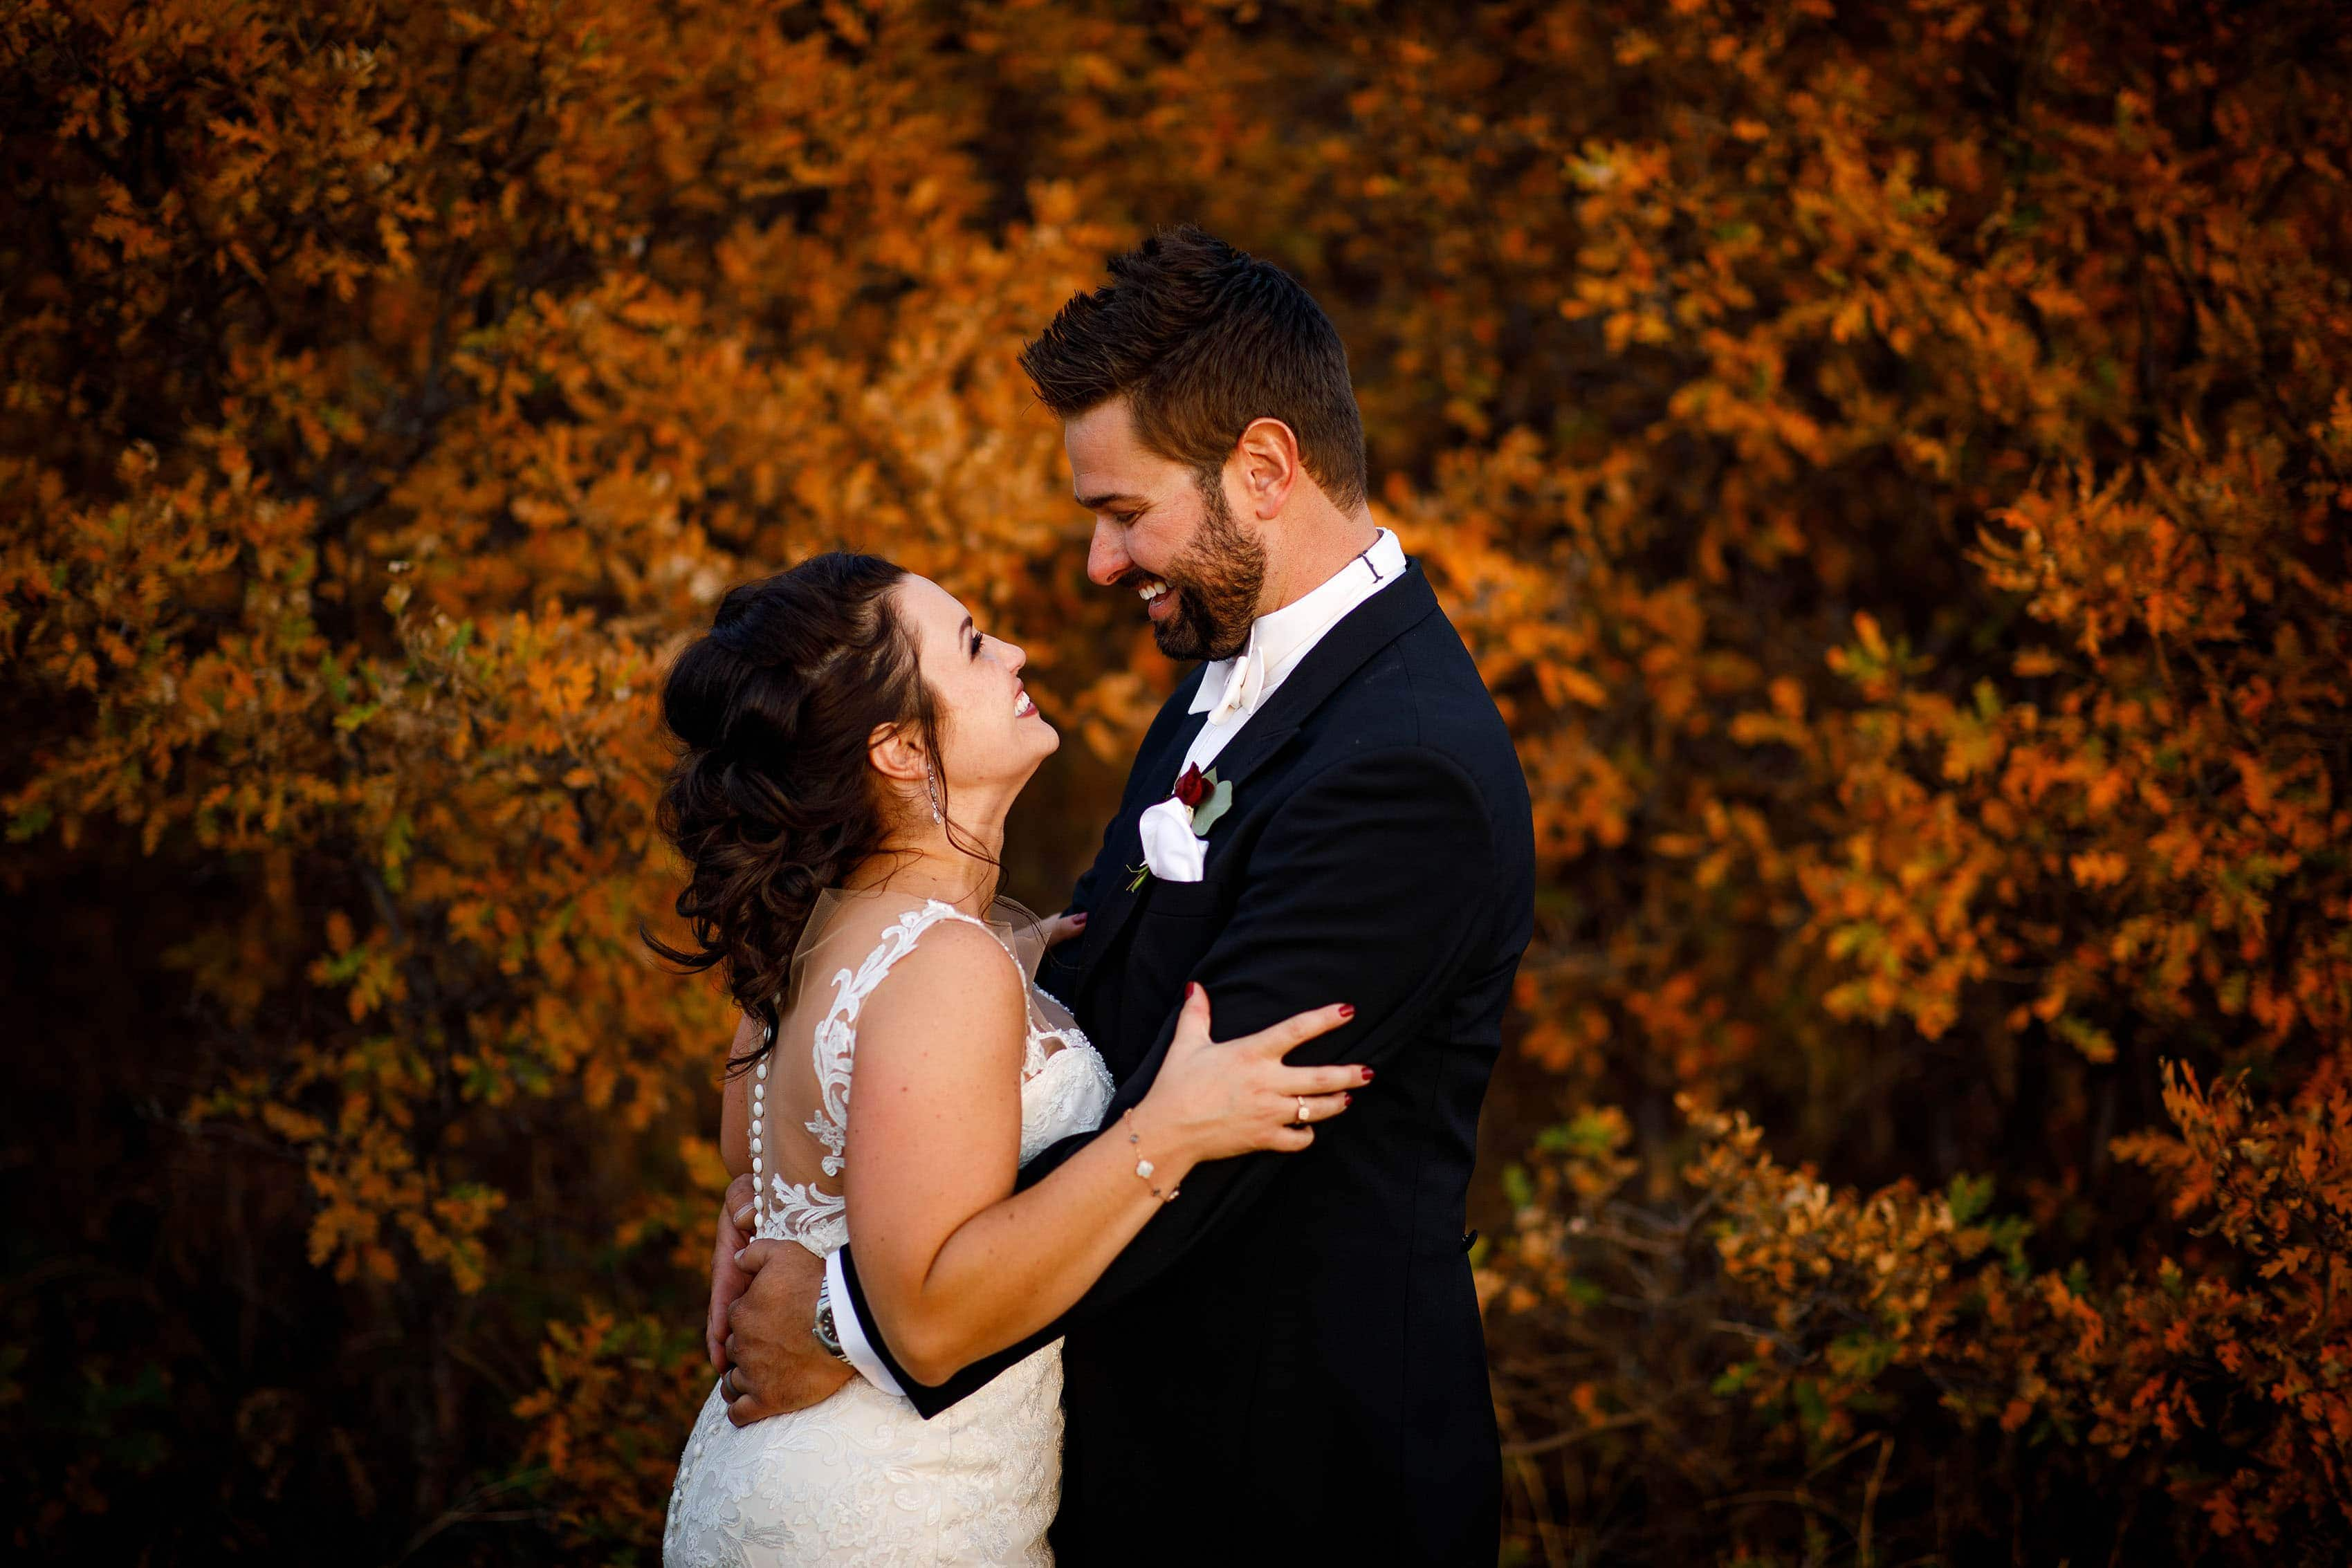 The couple embrace near a grove of fall color after their wedding in Sedalia